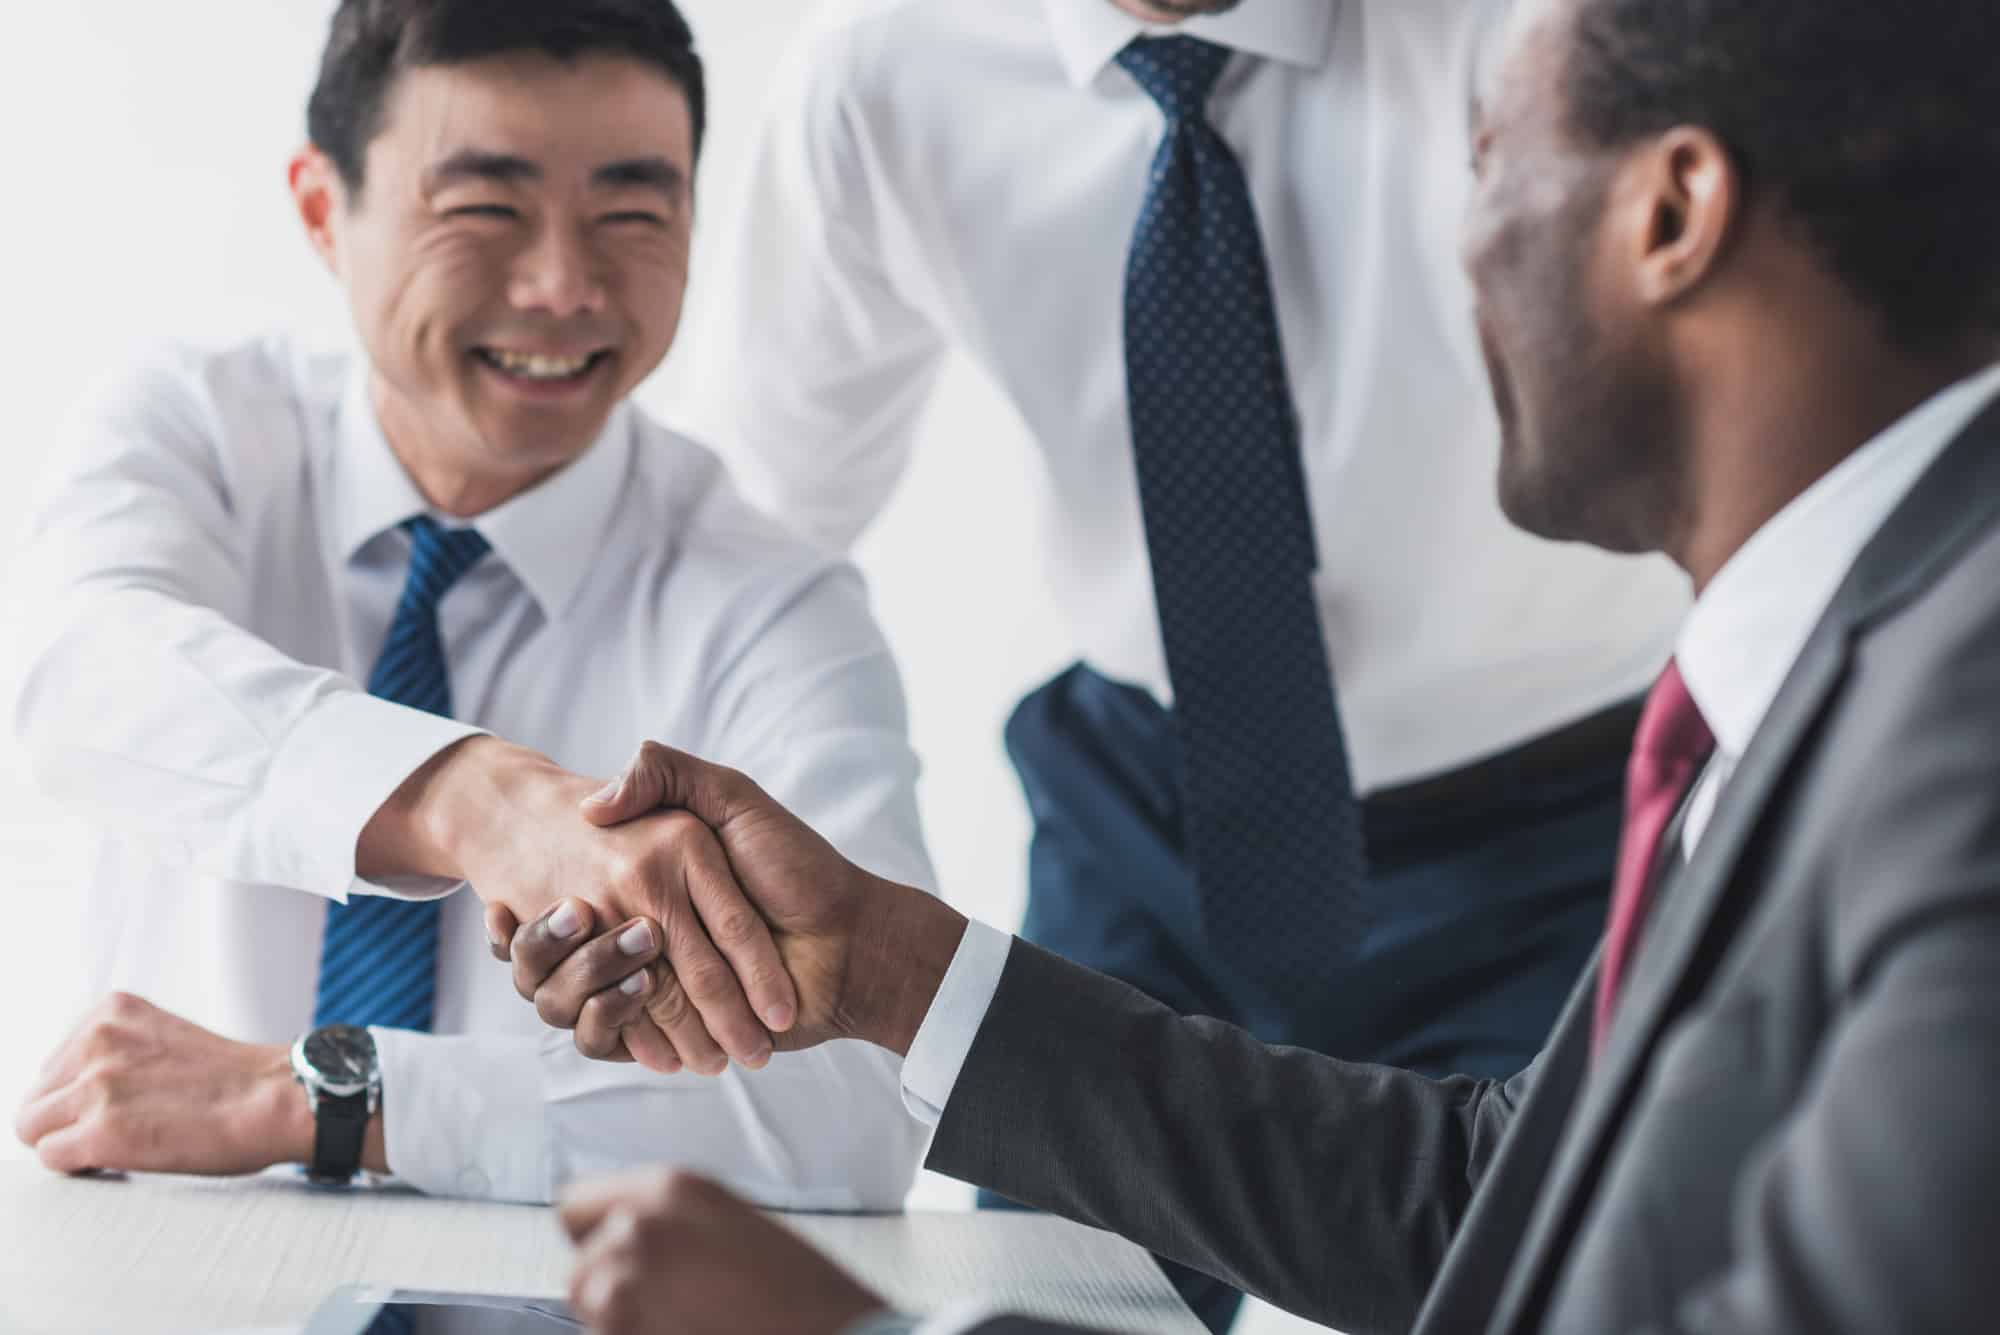 Black male tax accountant with a good personality laughing and shaking hands with East Asian male client